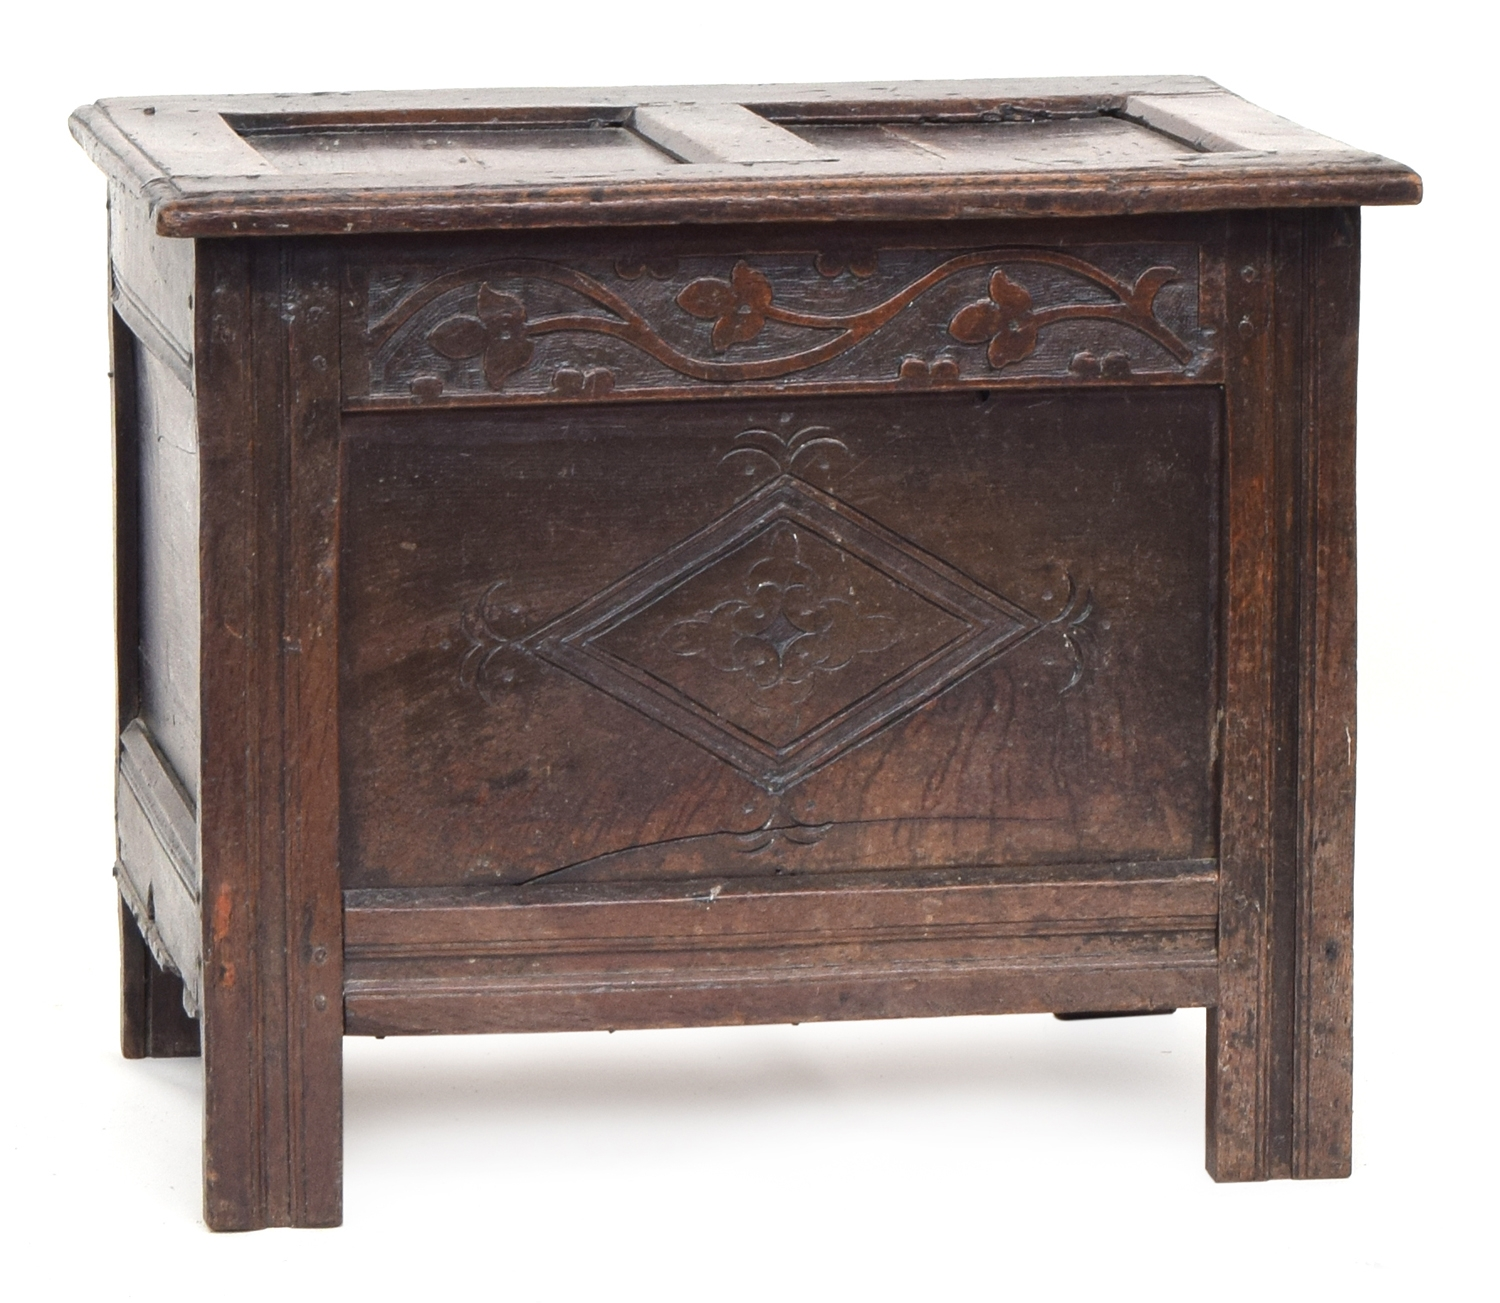 A single panel oak coffer, two panel hinged top, over blind fretwork and central lozenge, 69cm wide,